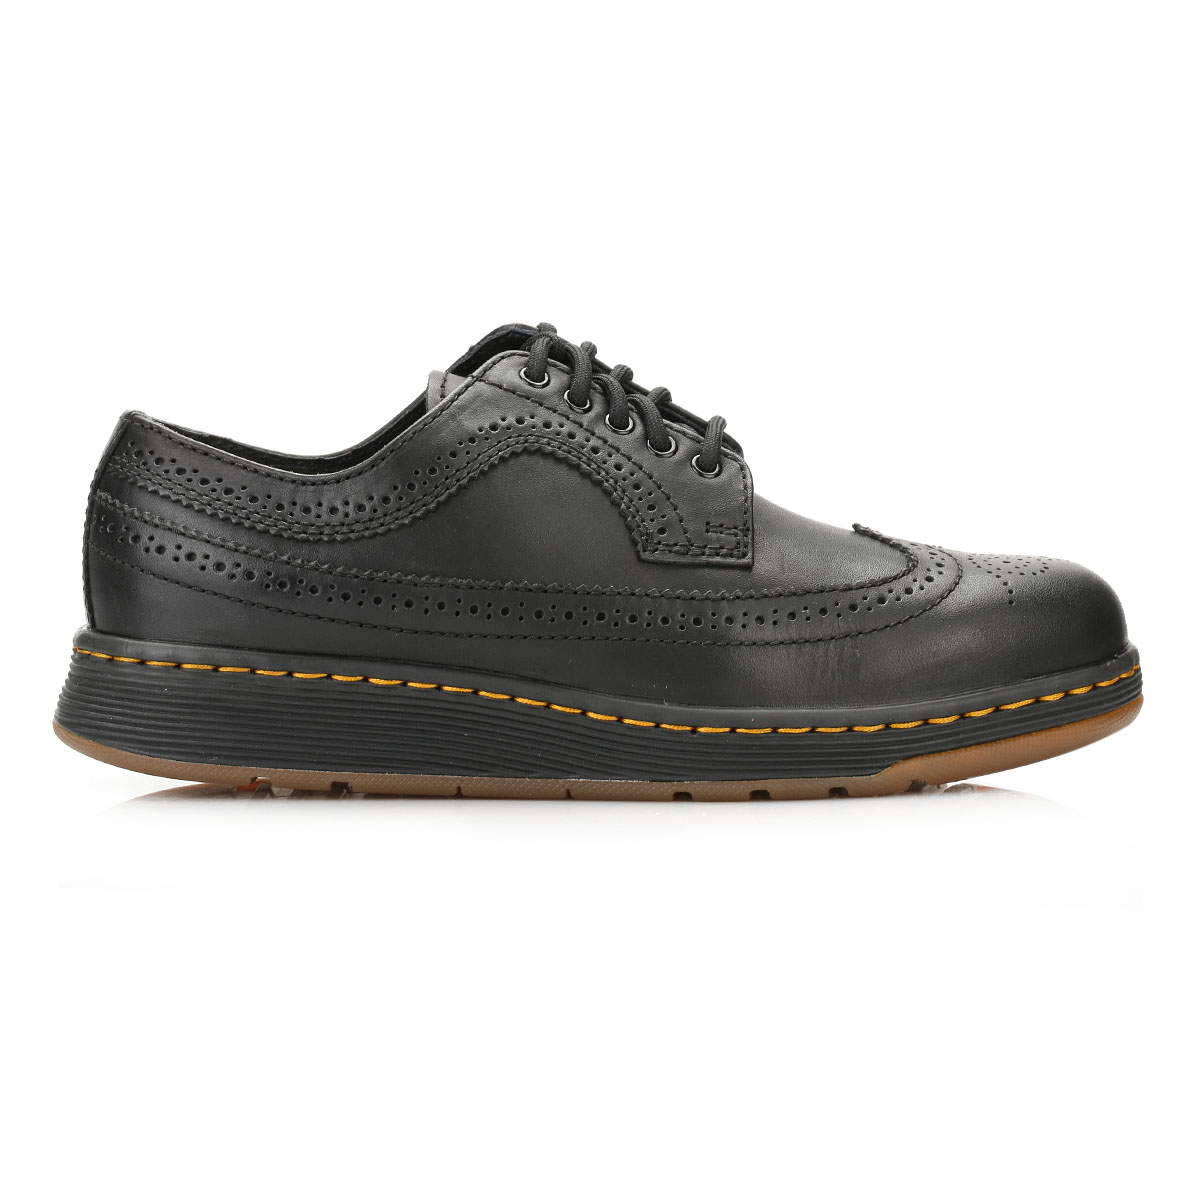 Dr Martens Mens Shoes Black